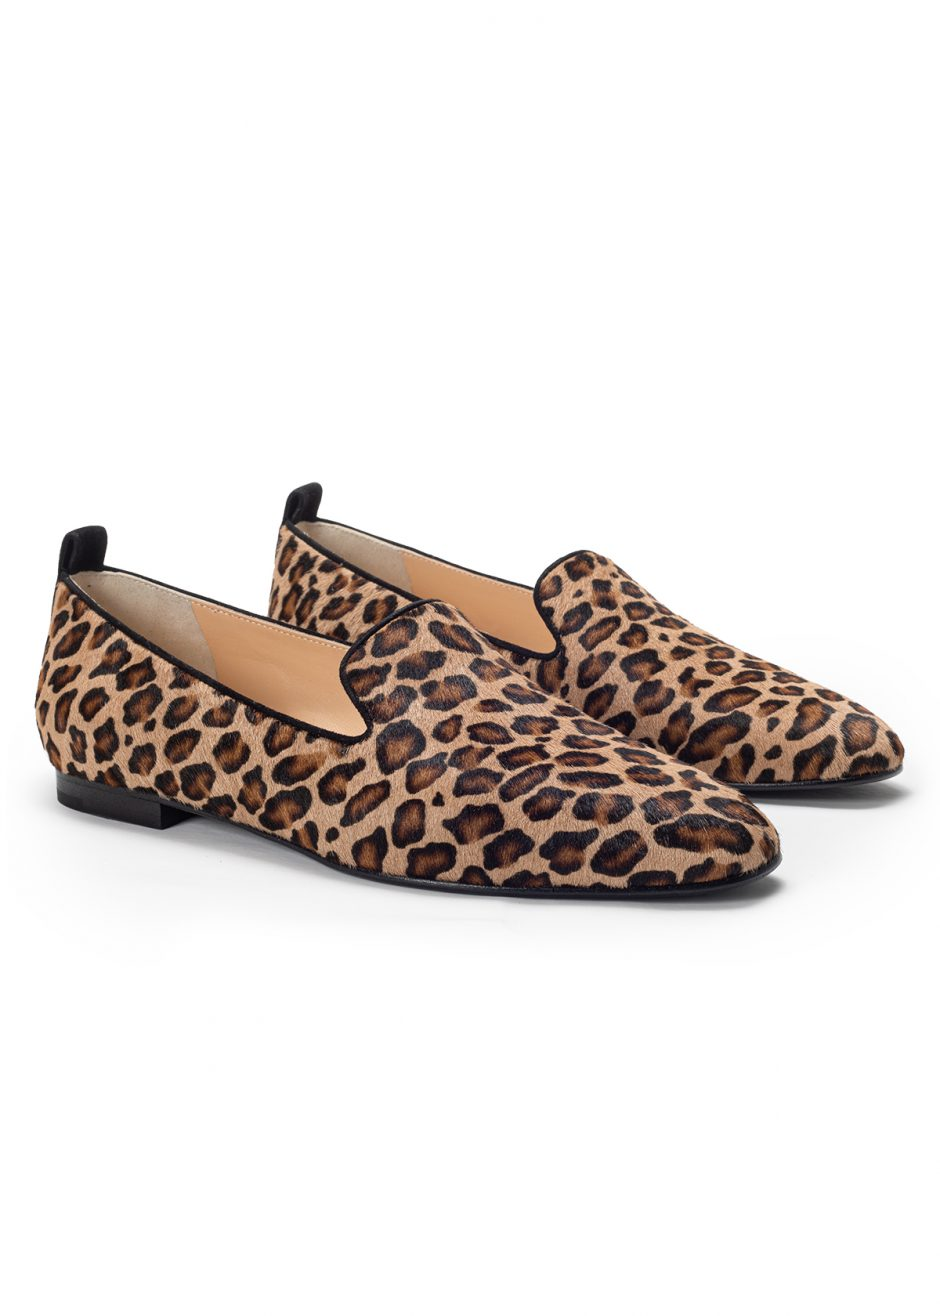 Vicky – Ballet flat spotted pony skin suede